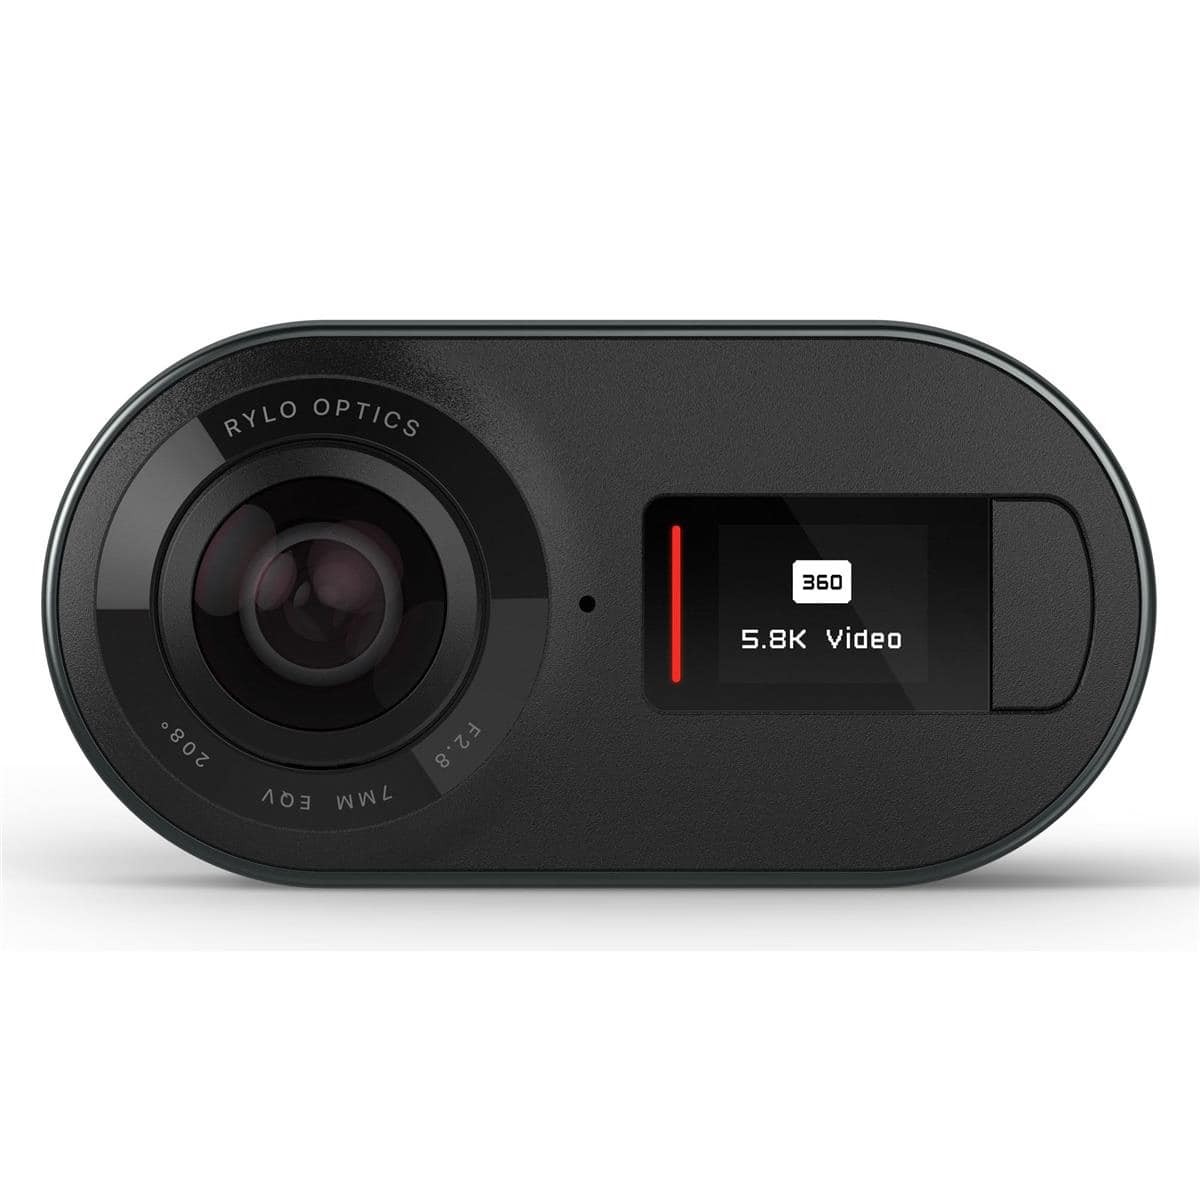 Rylo 5.8K 360 Degree Video Camera $249 and free shipping